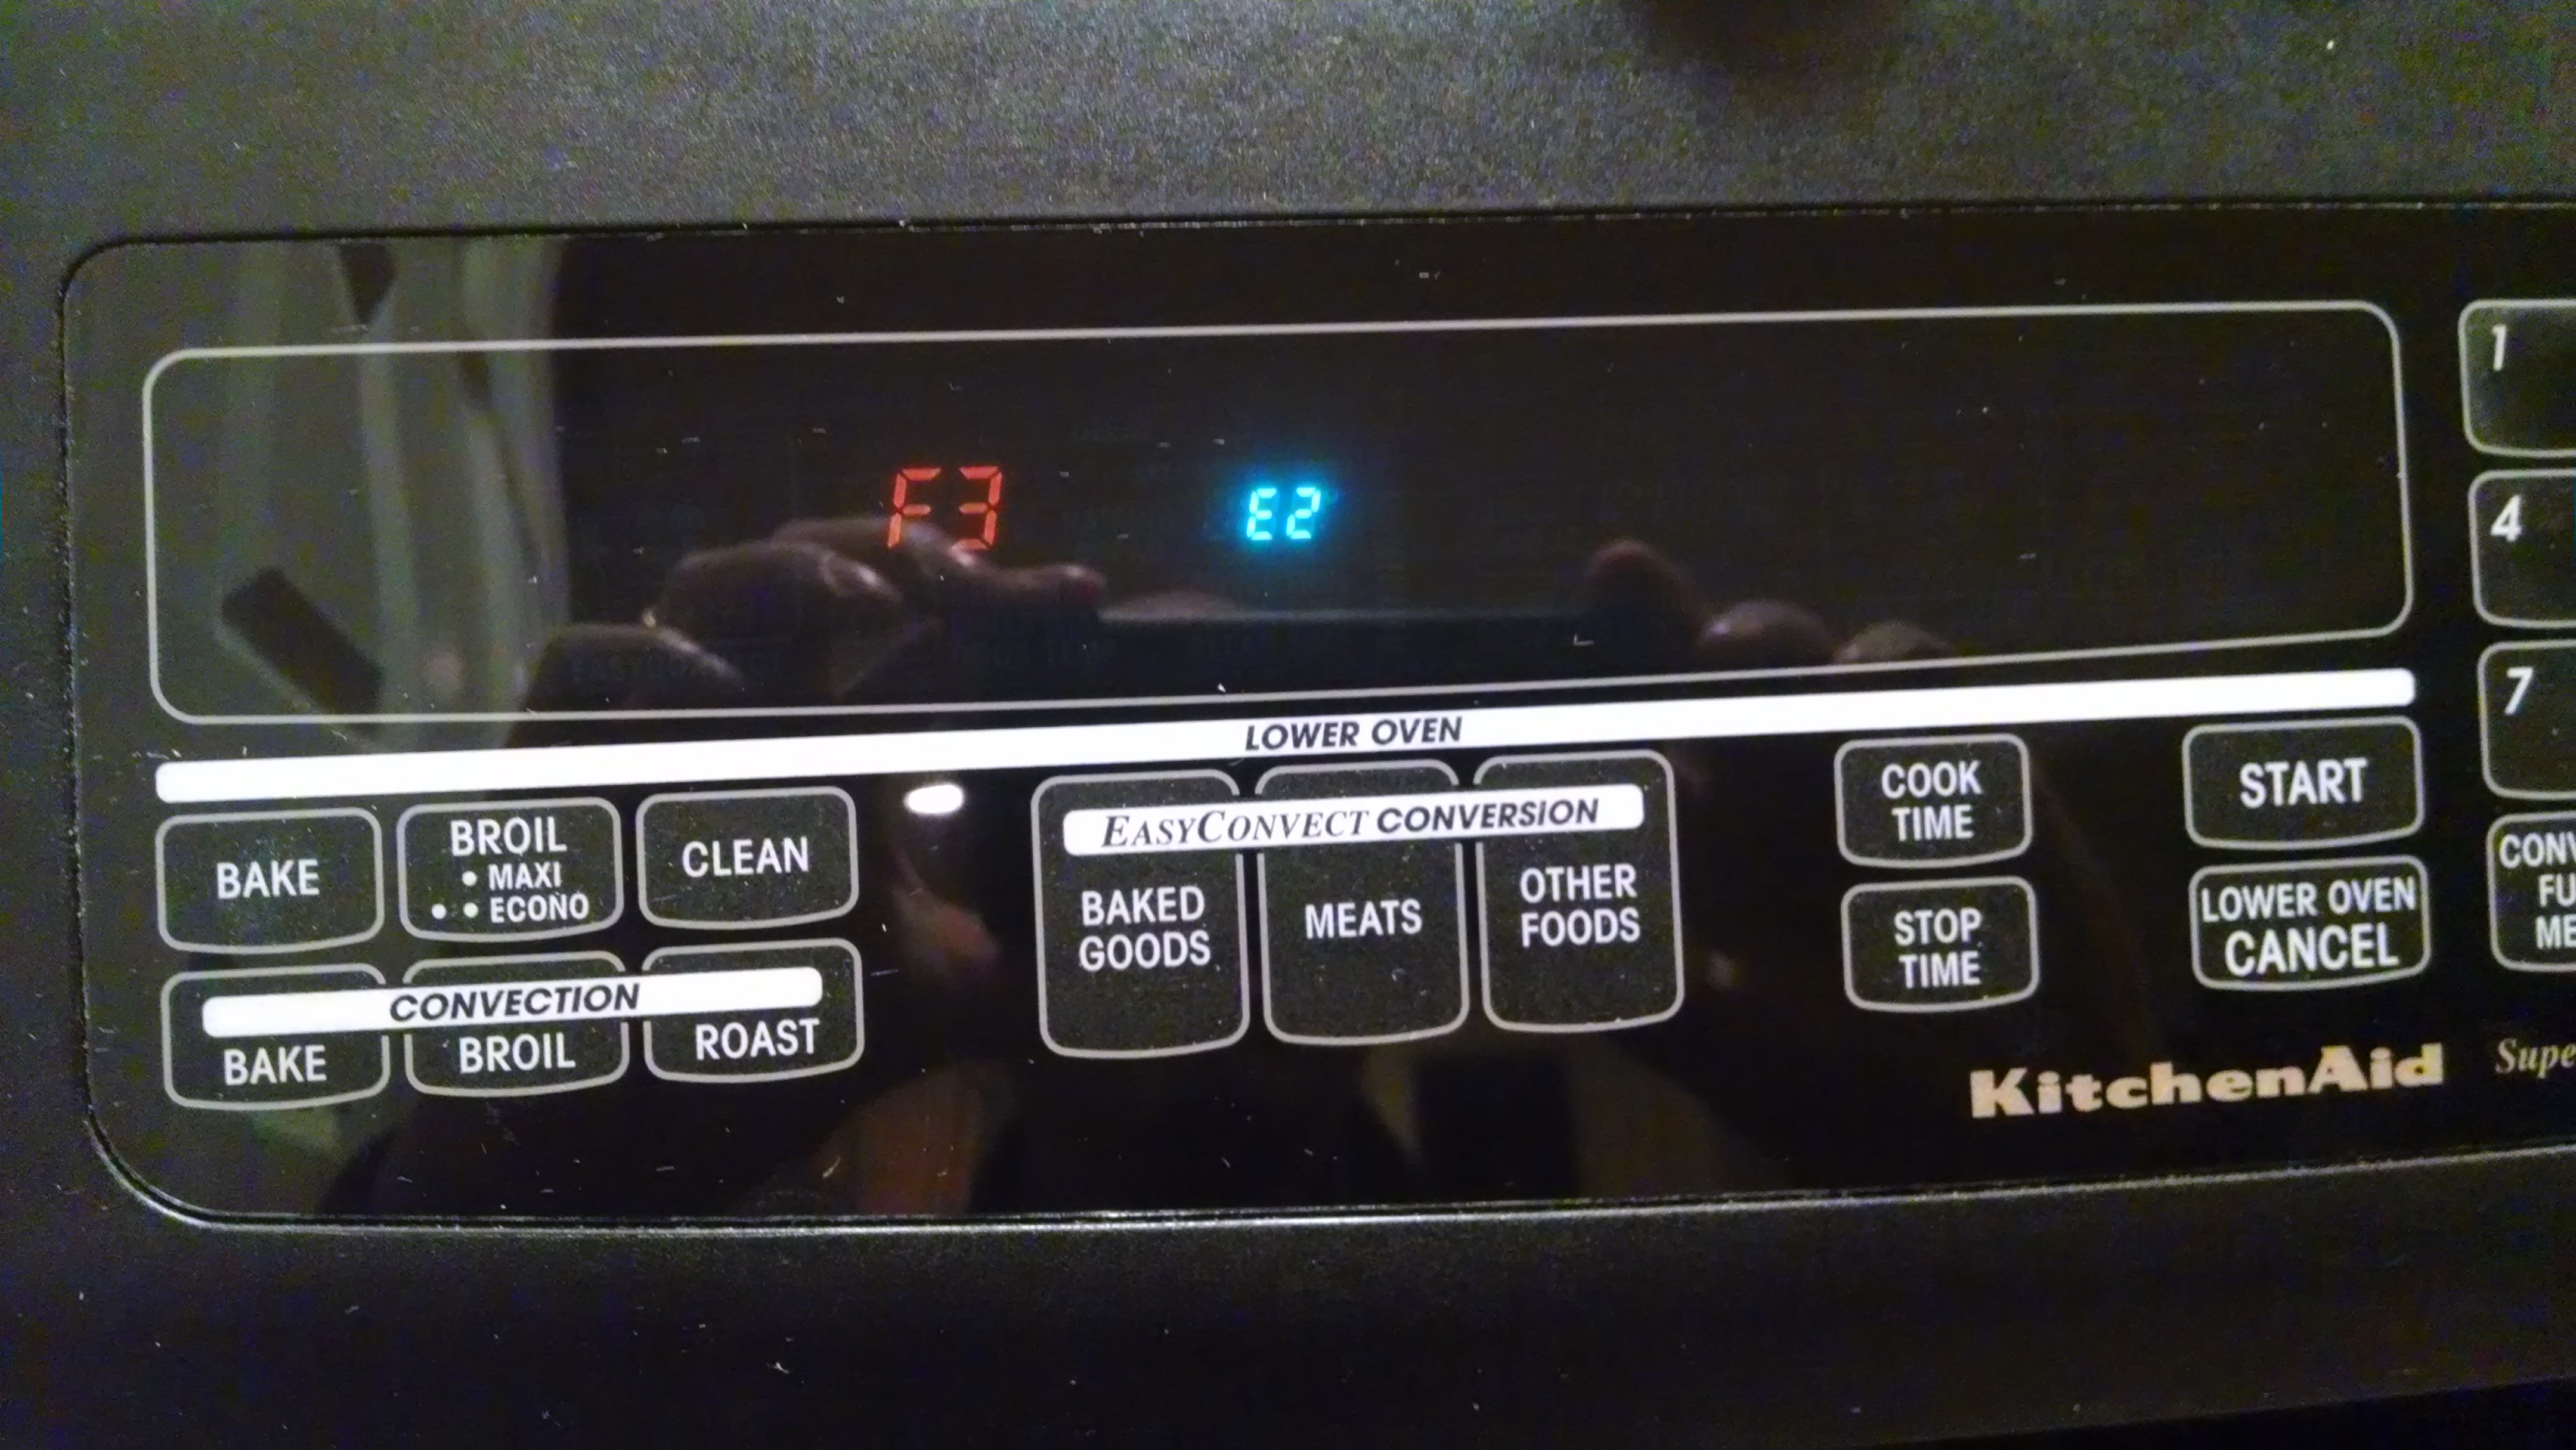 I Ve A Kitchenaid Superba Microwave And Oven Combo While